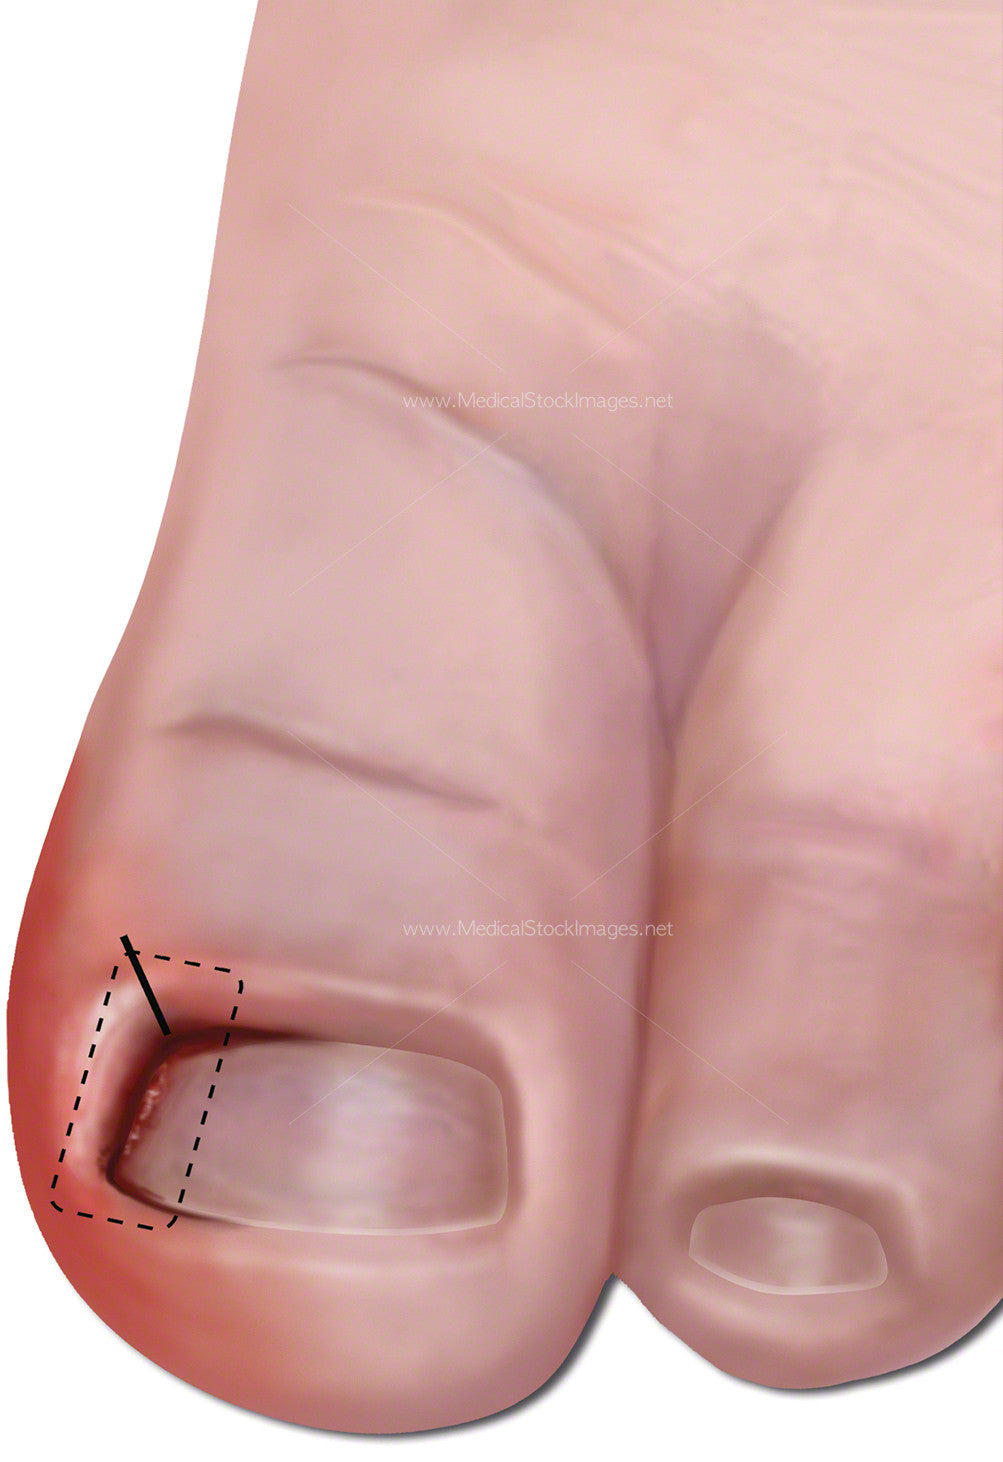 Ingrowing Toe Nail Rectified with Wedge Incision (Child) – Medical ...